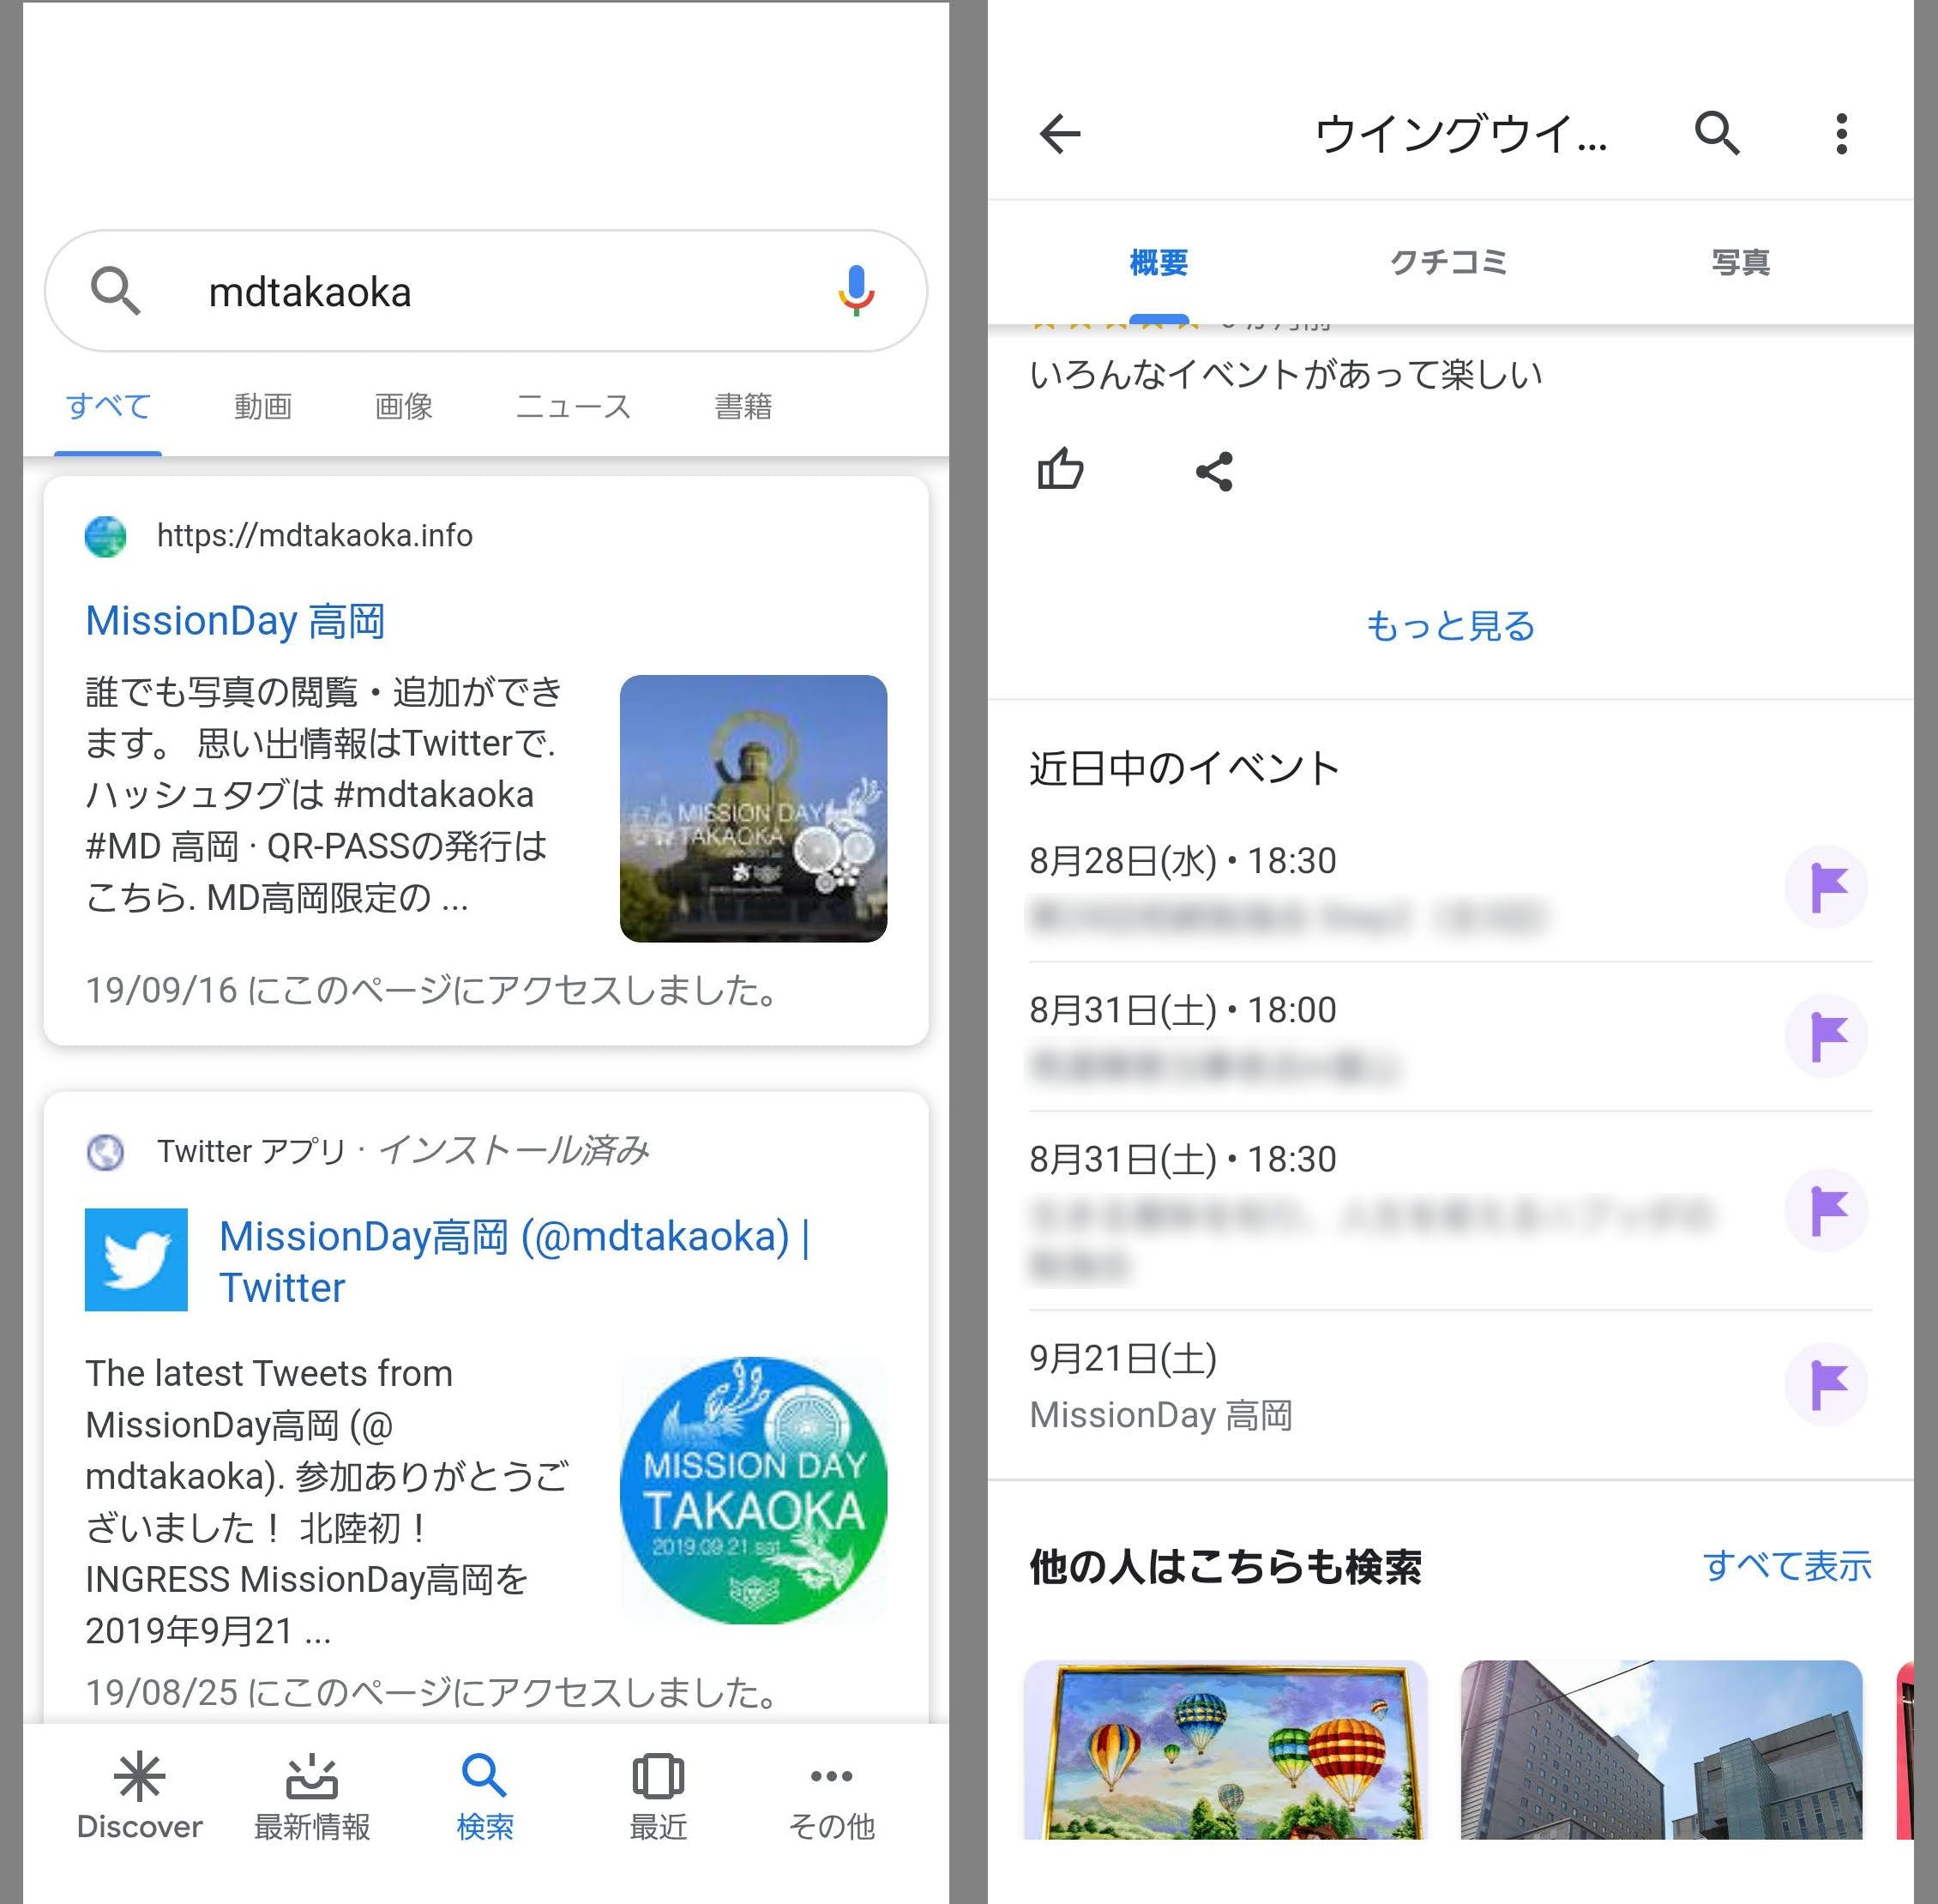 Screenshot_20190926-181535_Google.jpg